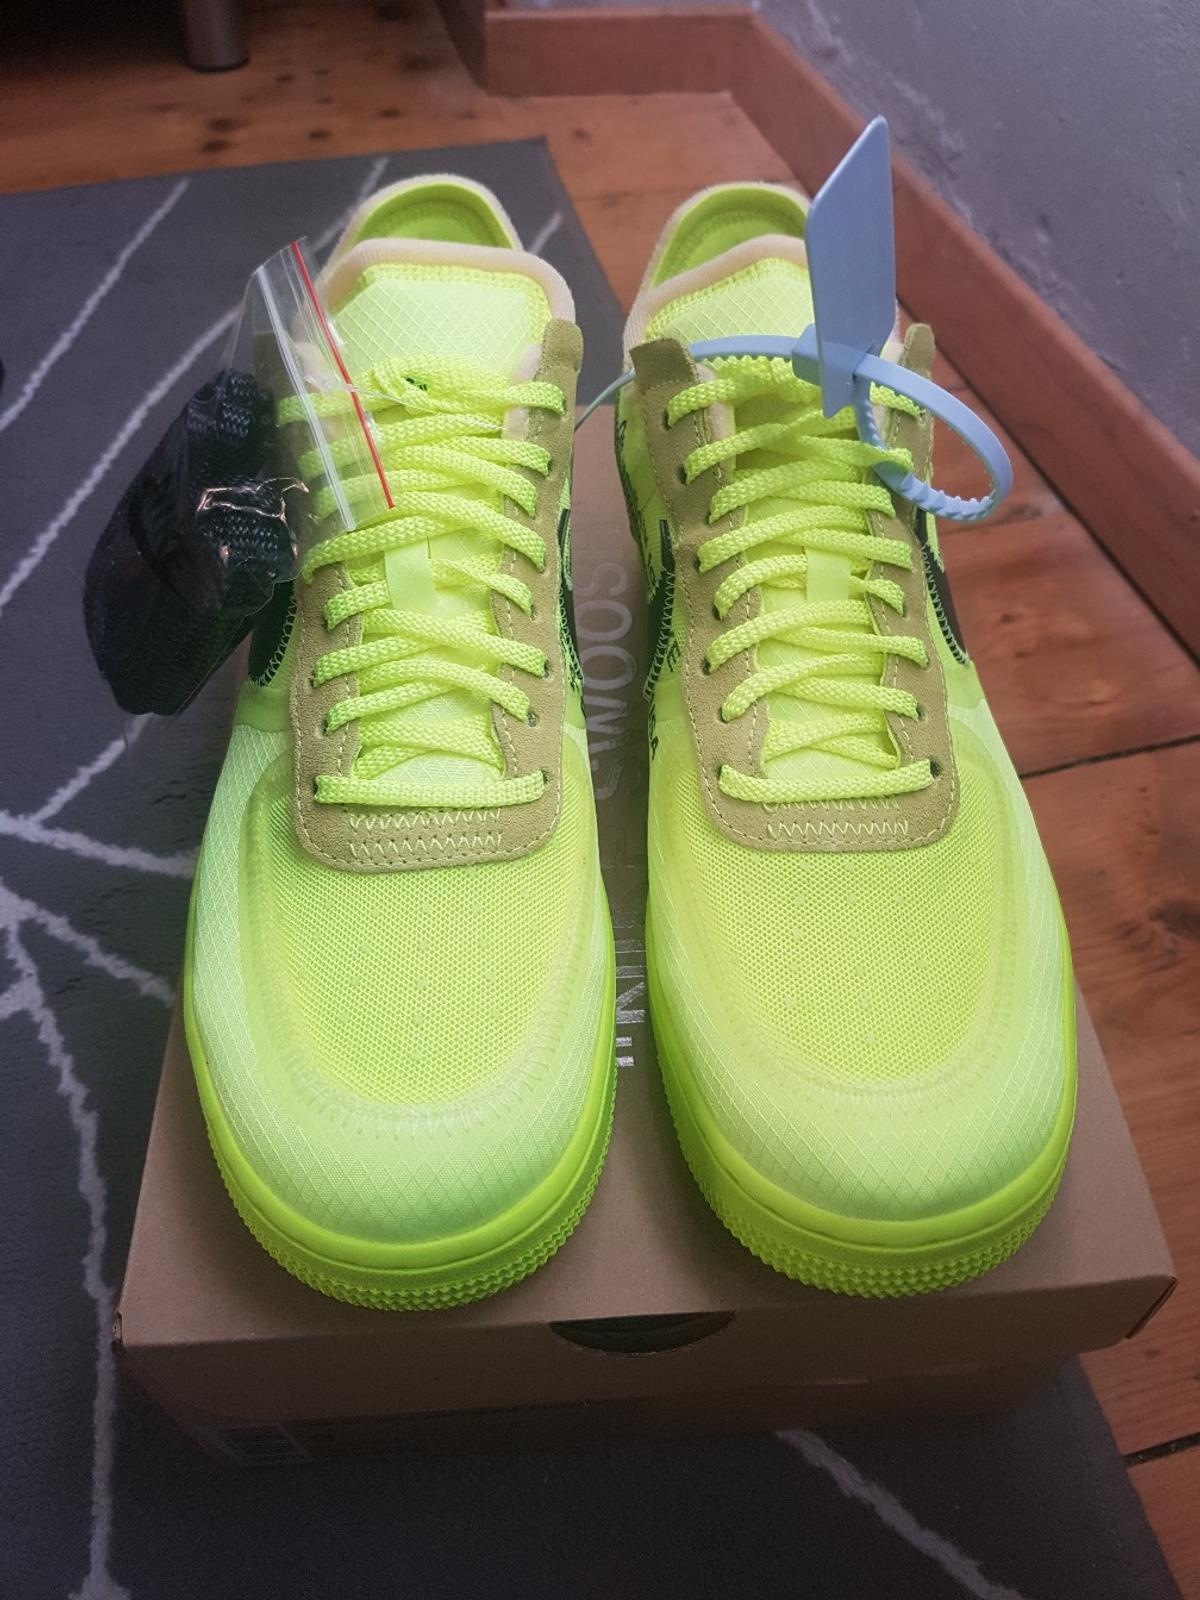 Off X Air 1 Low Nike White Force Us9 Volt kXZiTuOP